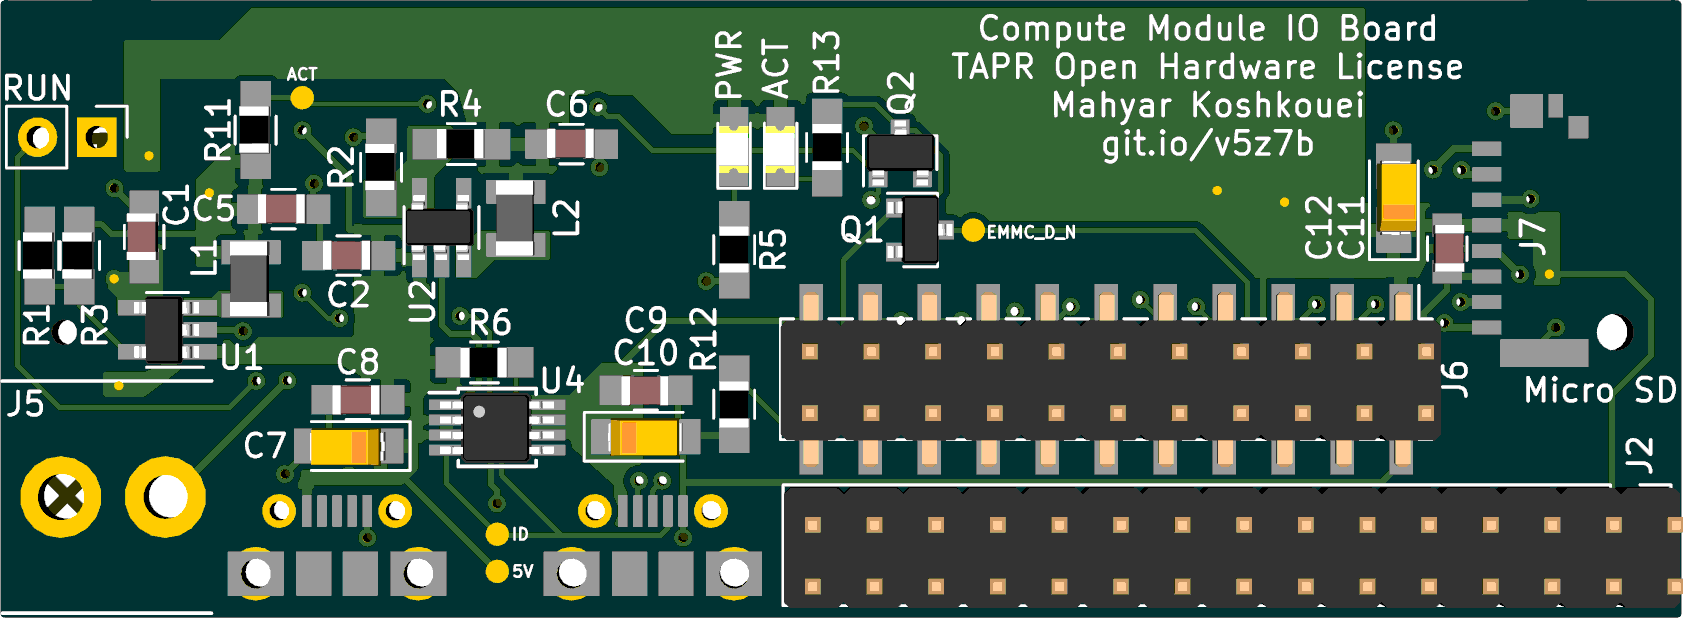 Preview of the front of the PCB